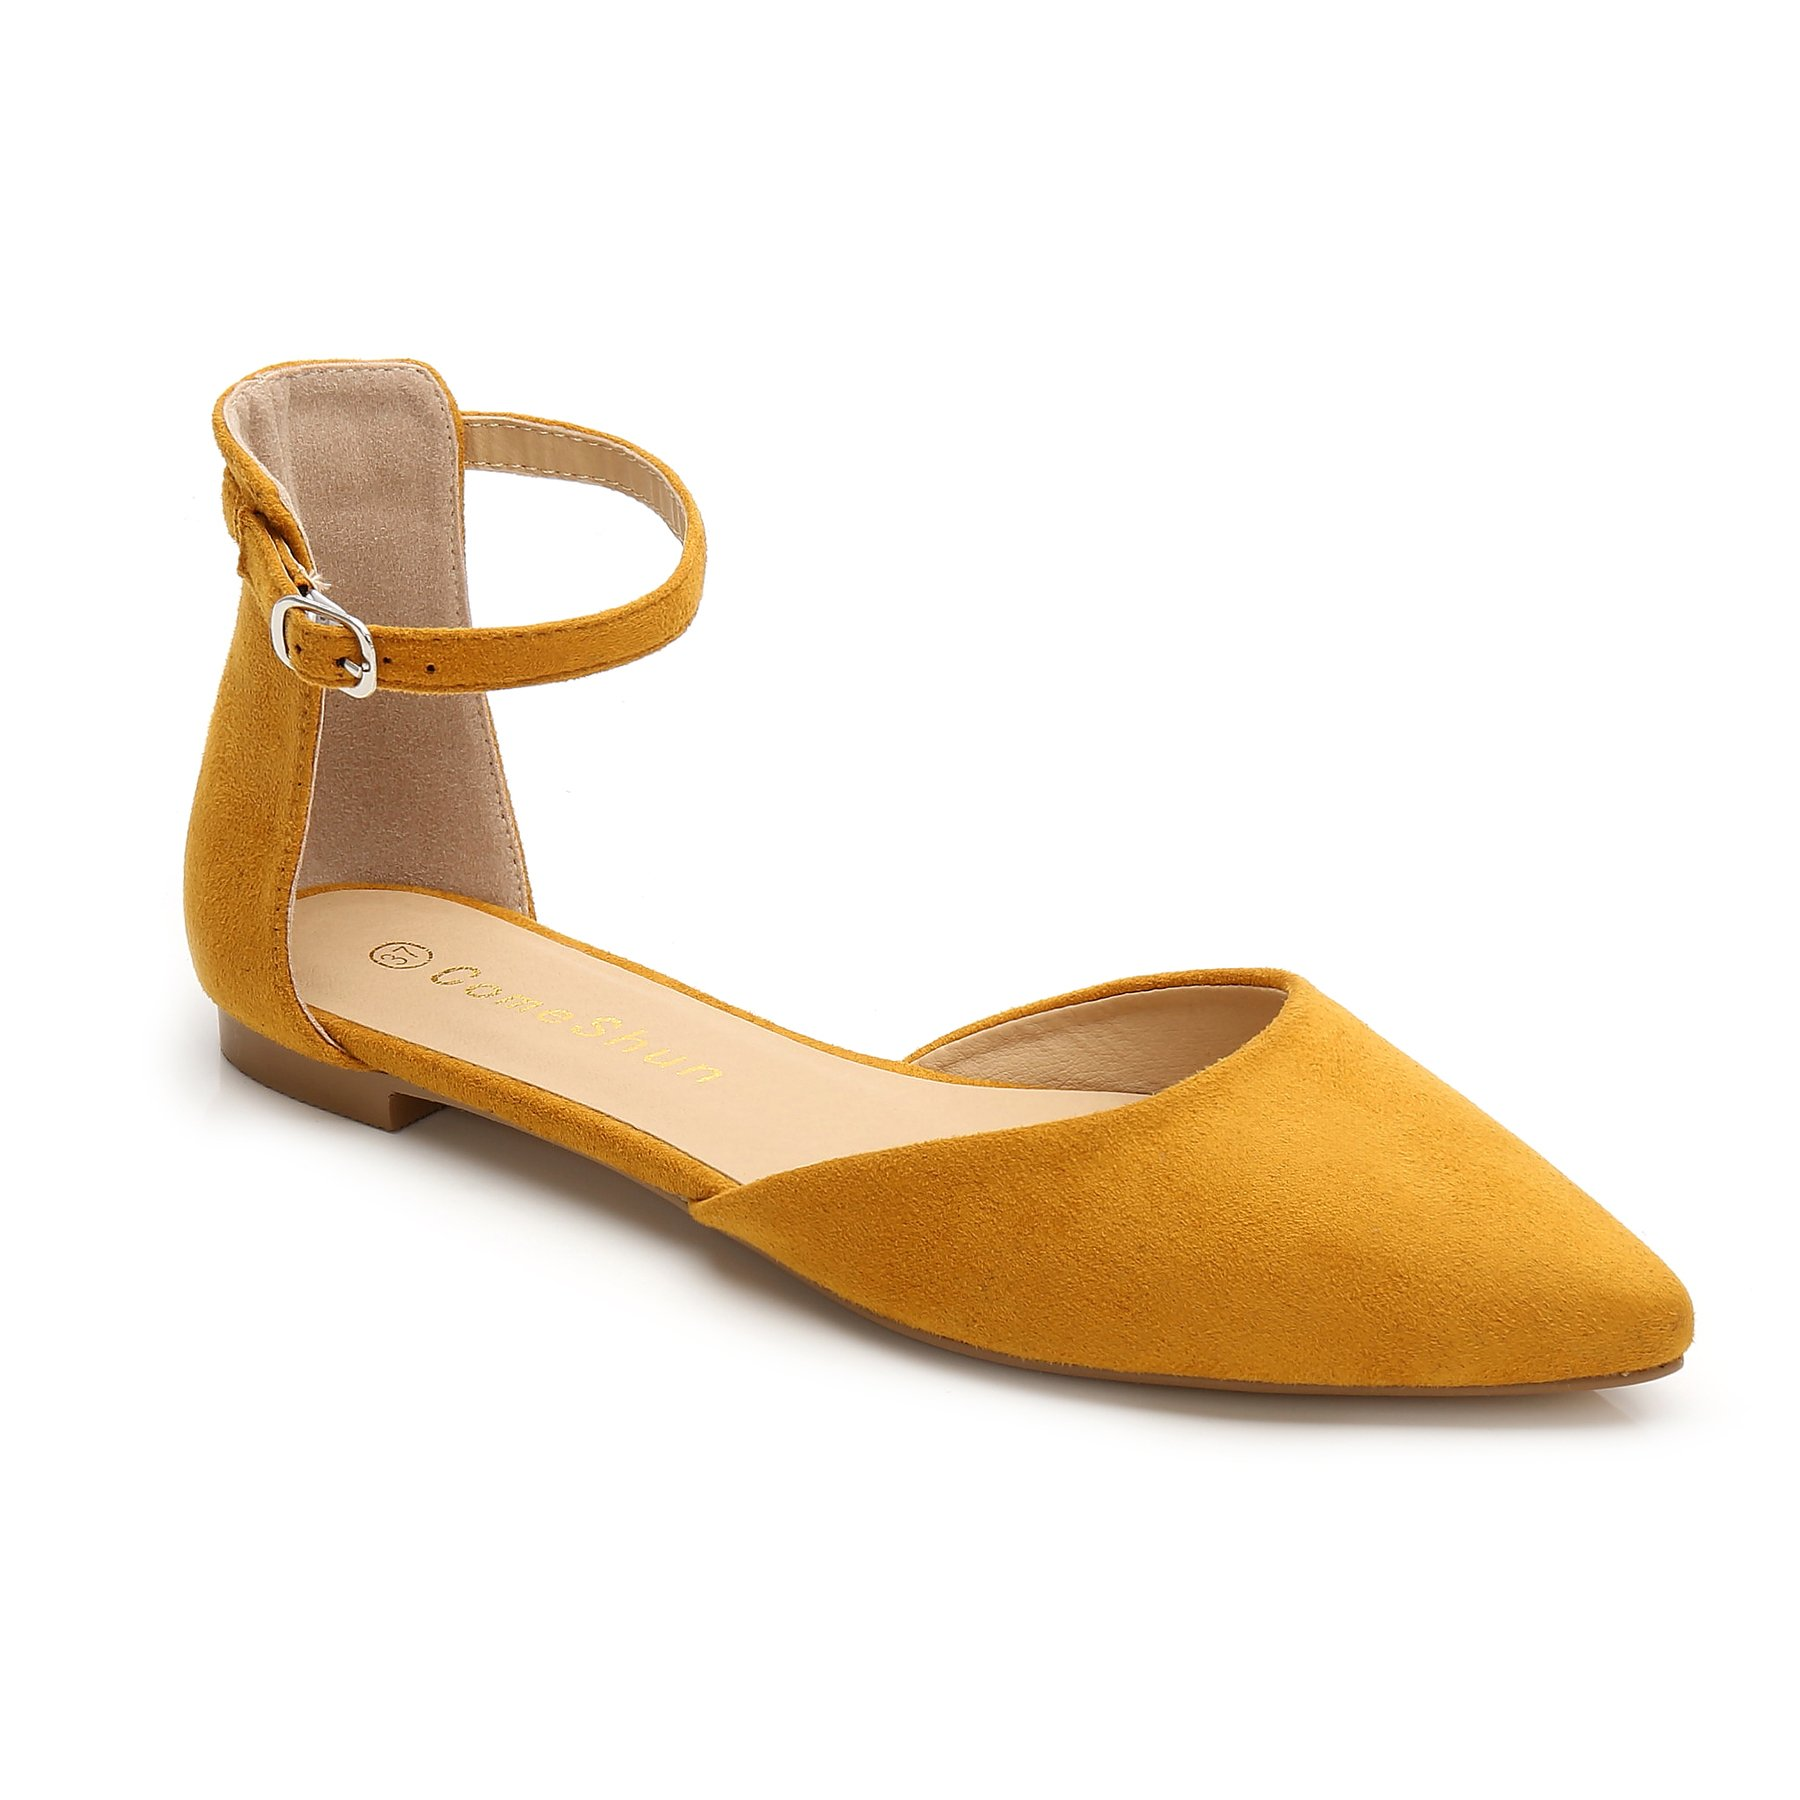 ComeShun Womens Yellow Sexy D'Orsay Classic Slip On Pumps Shoes Size 7